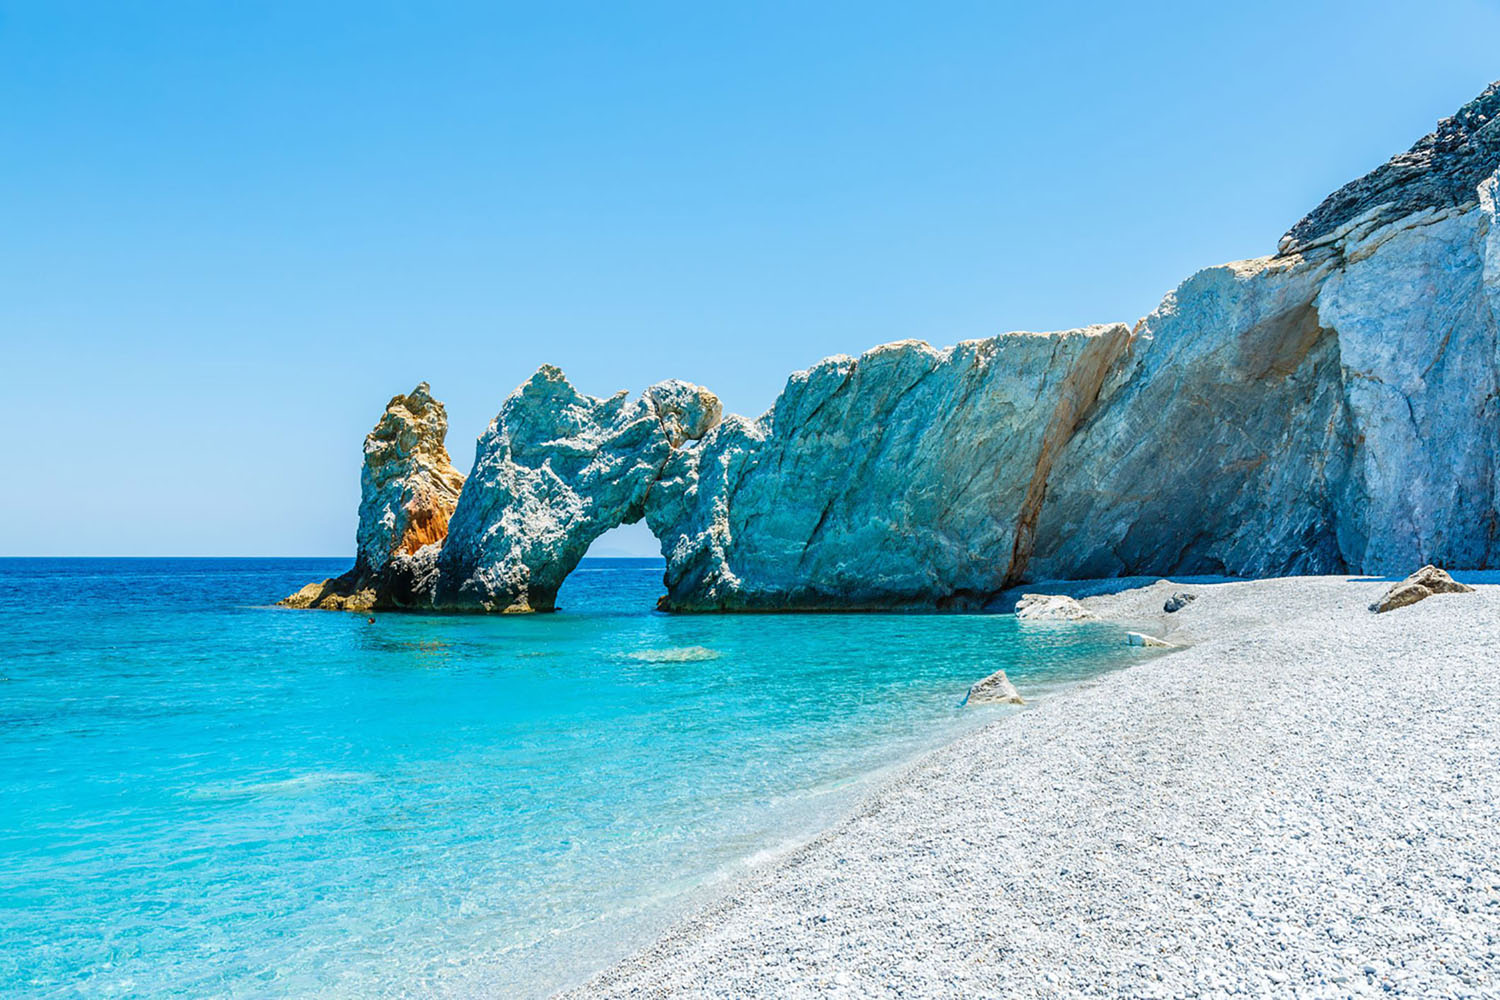 Famous hole in the rock formation at Lalaria beach in Skiathios, Greece.